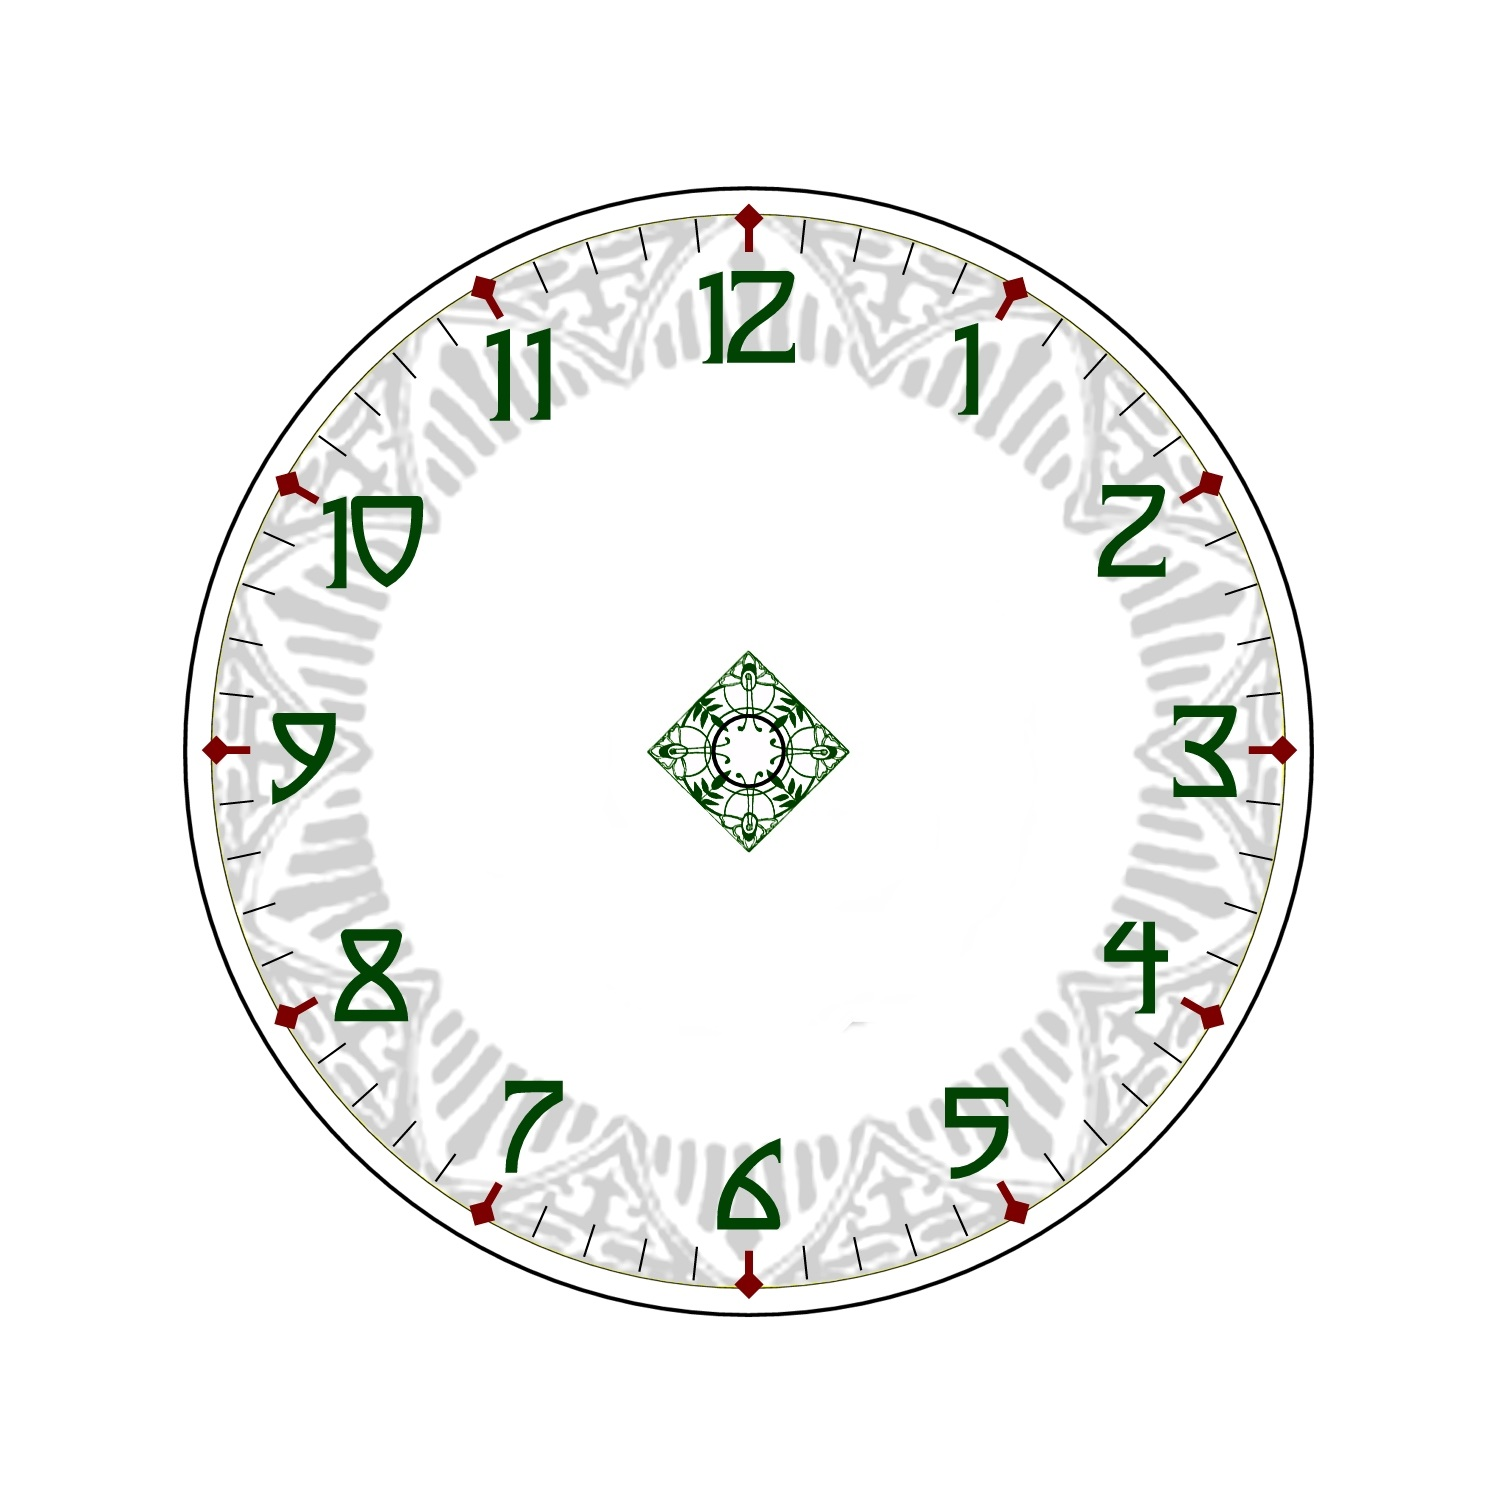 photo relating to Free Printable Clock Faces identified as Free of charge Clock Faces Printable Recreation Shelter